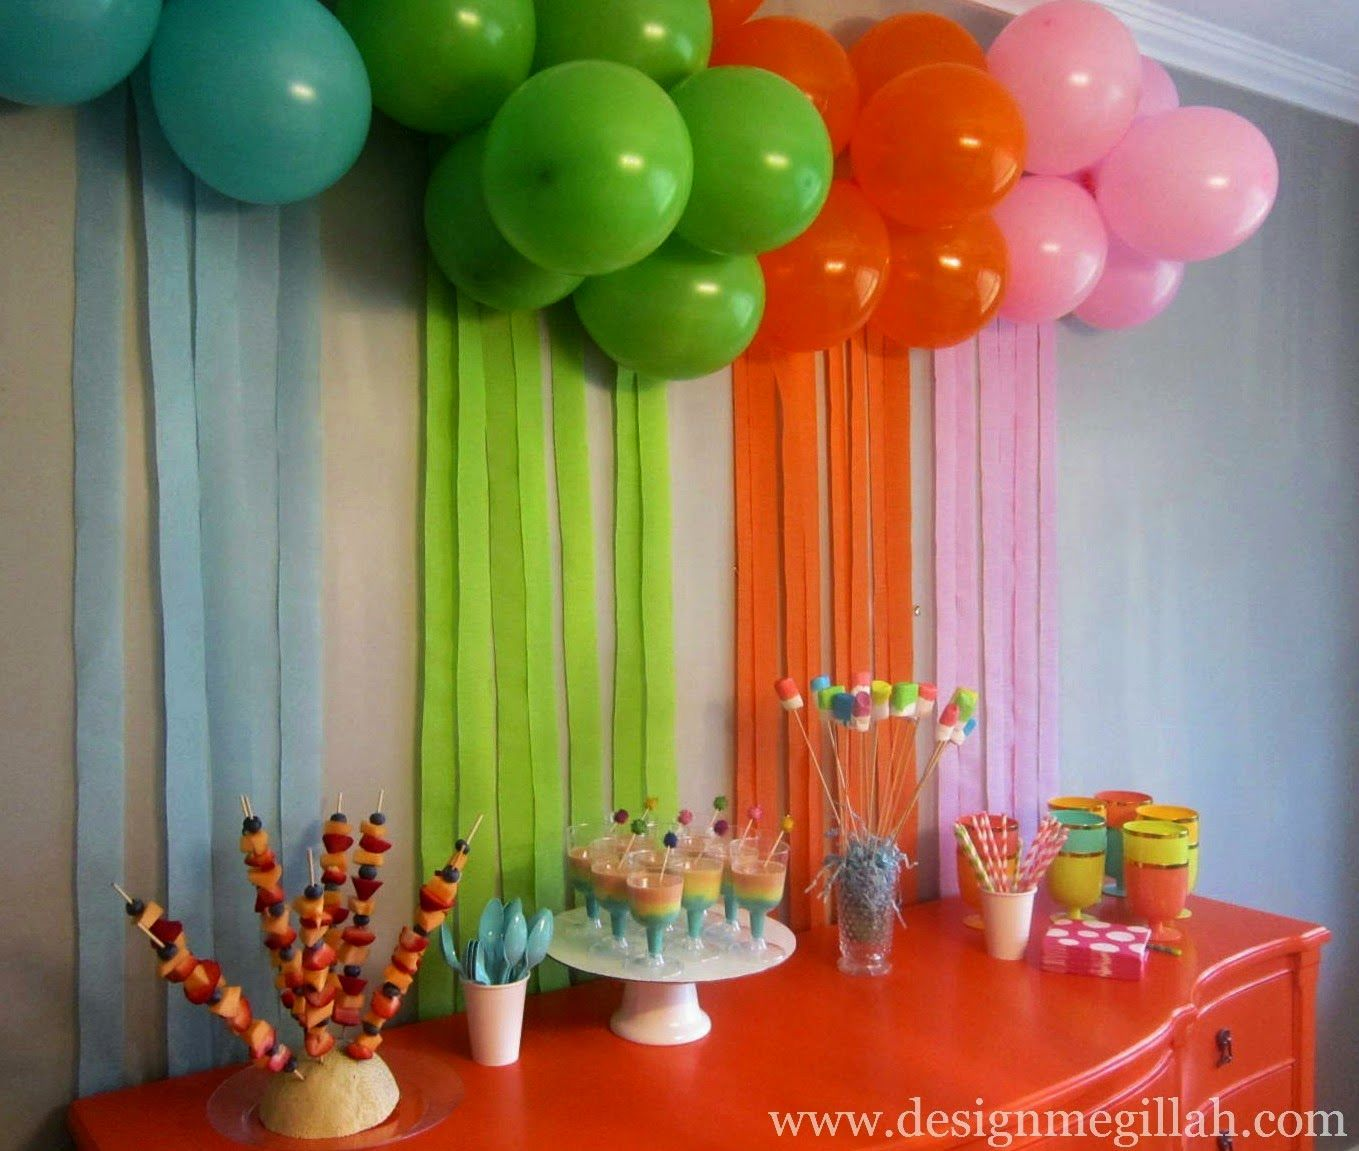 Home interior decor parties | House plans and ideas | Pinterest ...